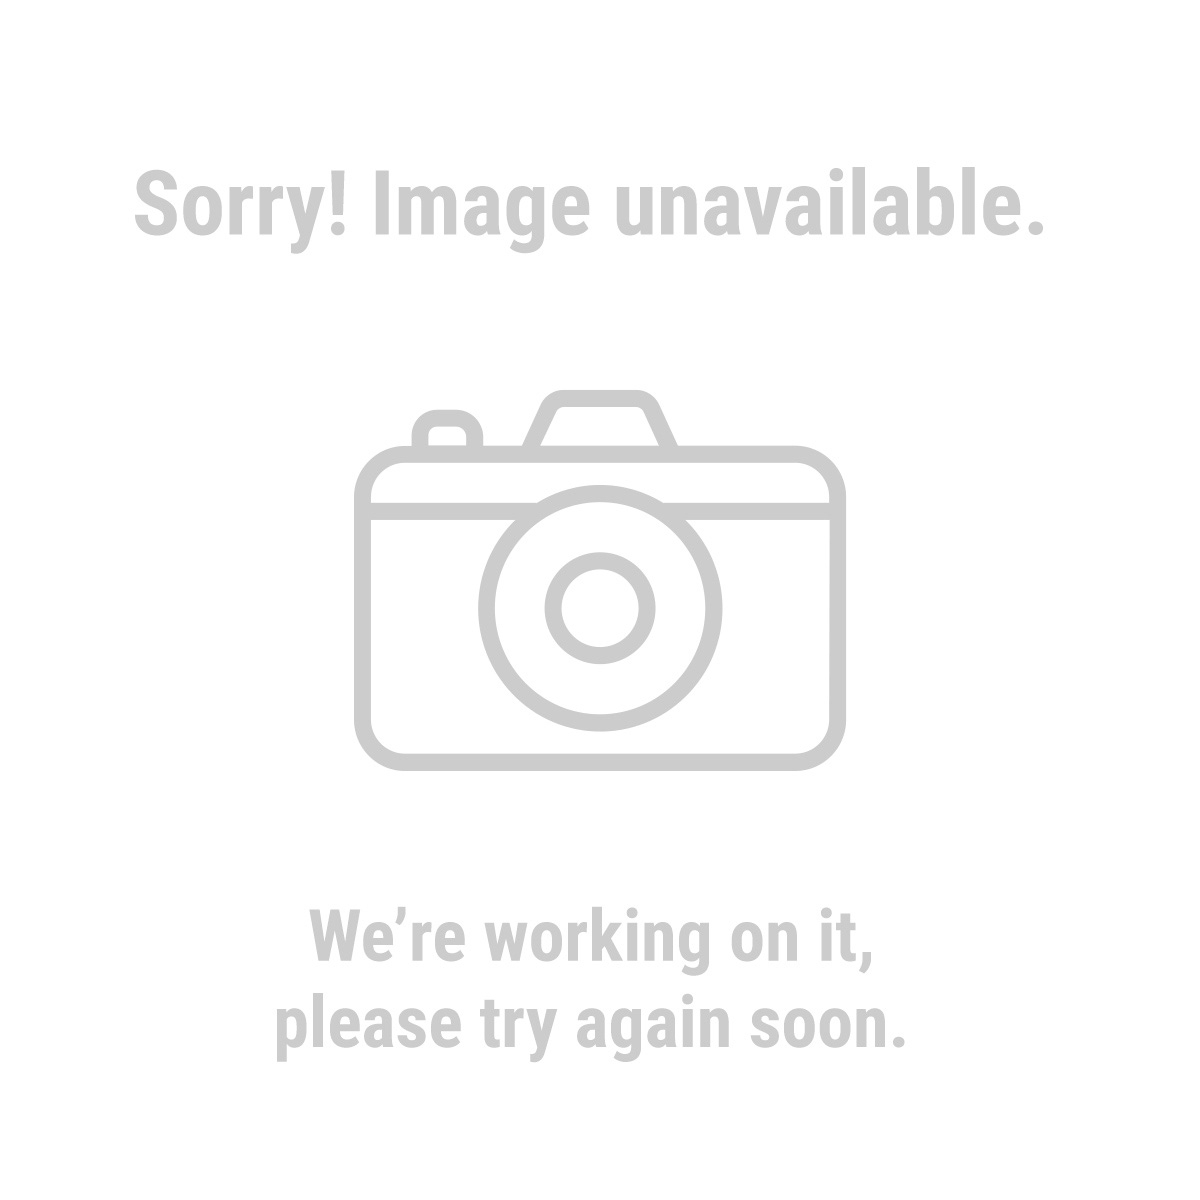 Central Pneumatic 69704 32 oz. Heavy Duty Multi-Purpose Air Spray Gun